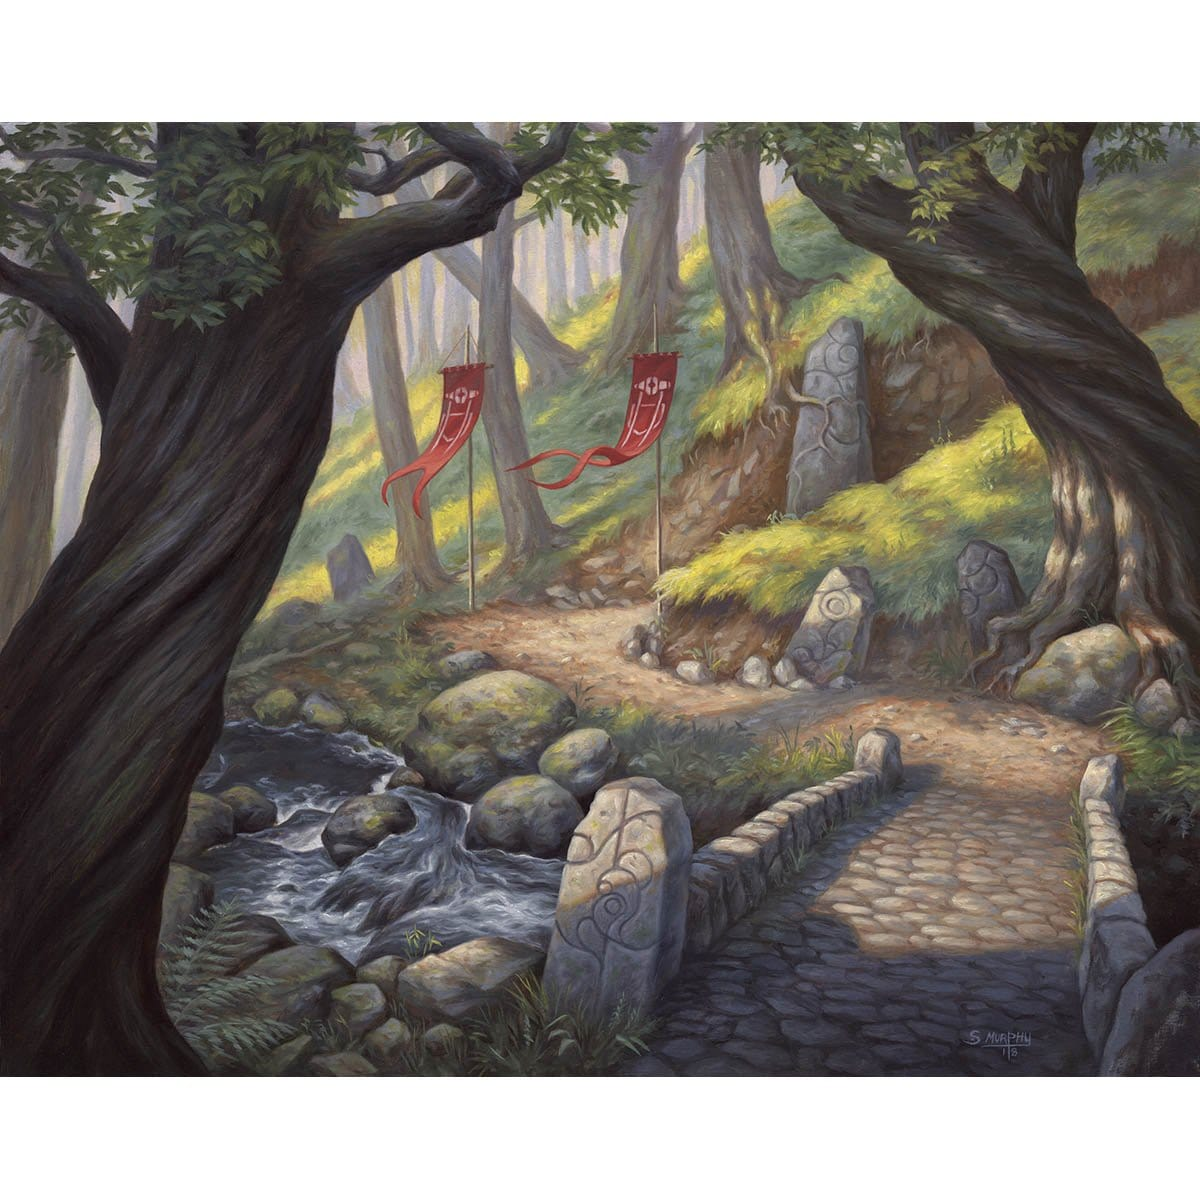 Forest (Throne of Eldraine) Print - Print - Original Magic Art - Accessories for Magic the Gathering and other card games